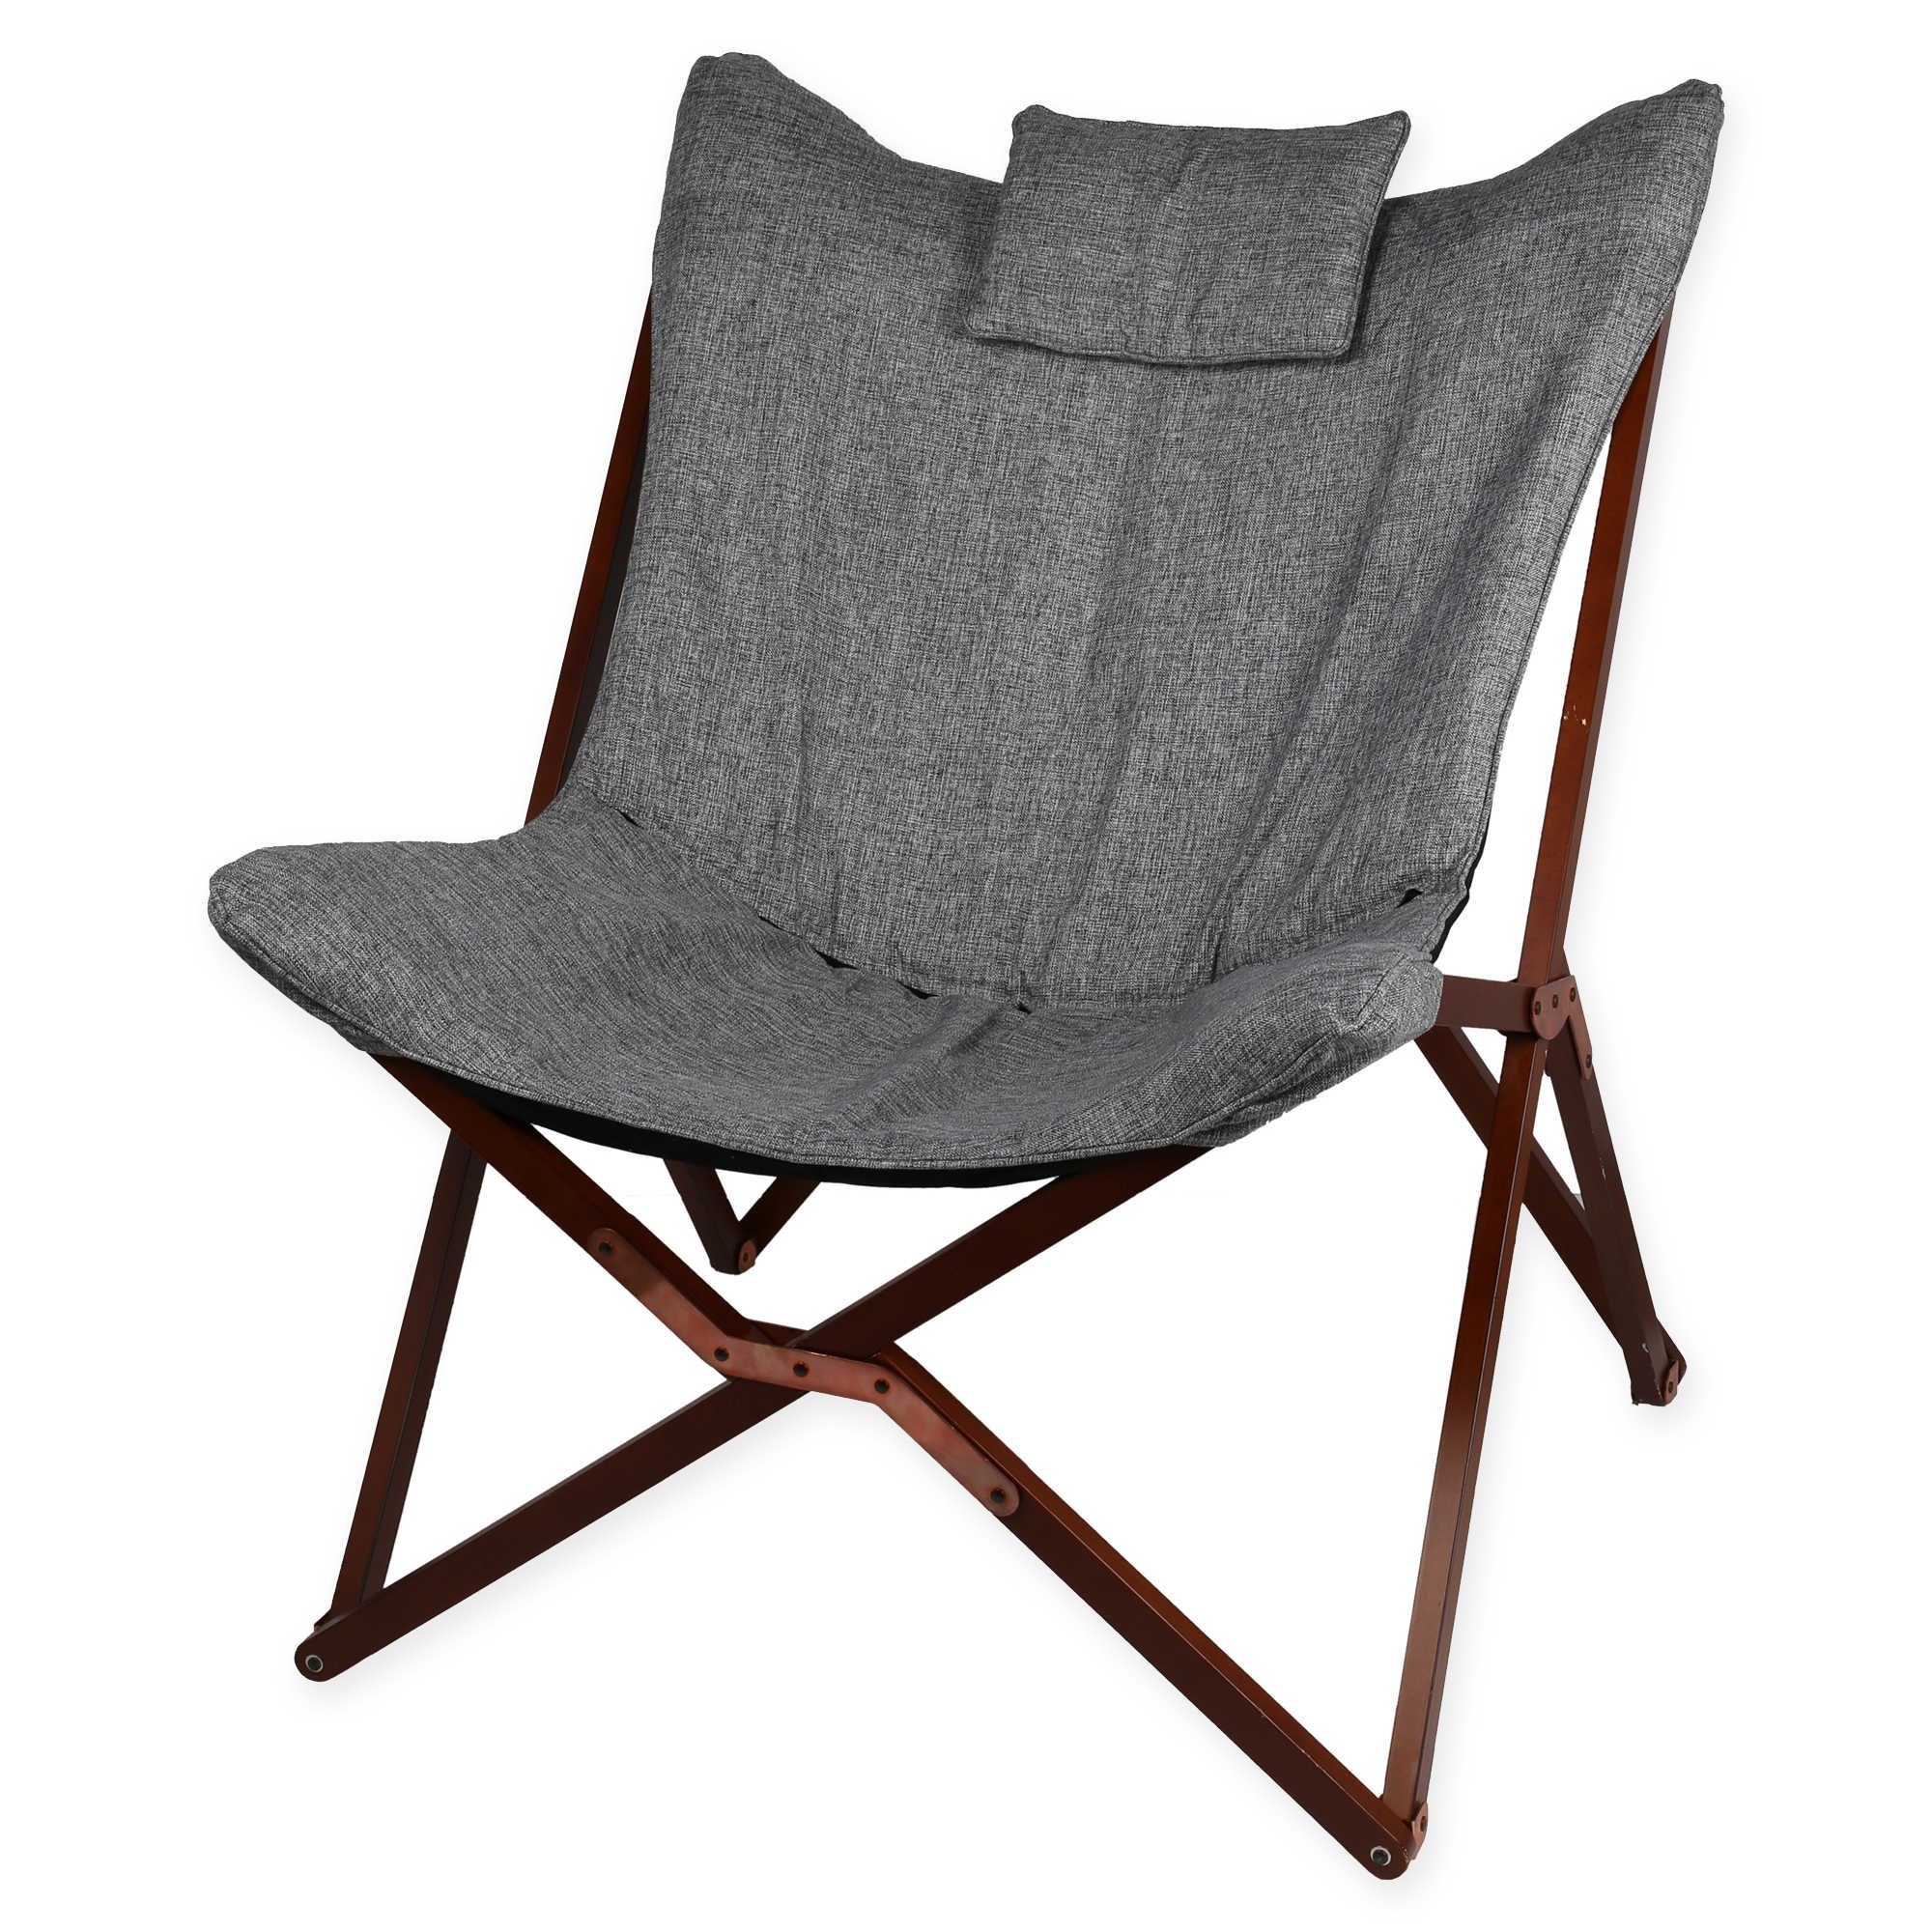 Modern and Crafted in a Butterfly Shape Linen Chair with Wooden Legs, Dark Grey